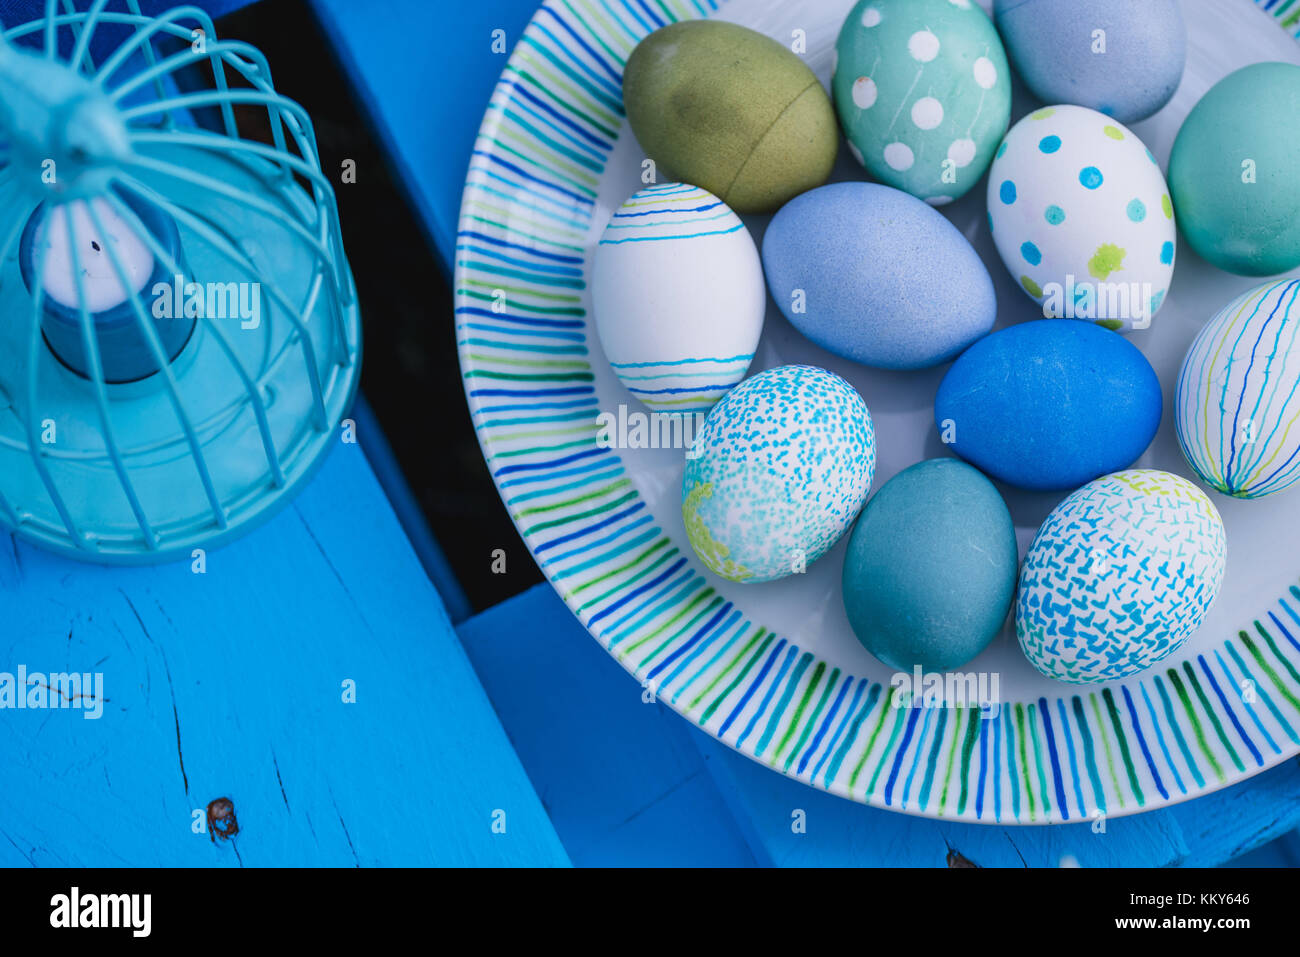 Garden, sofa made of pallets, Easter decoration, eggs, detail, bird's-eye view - Stock Image